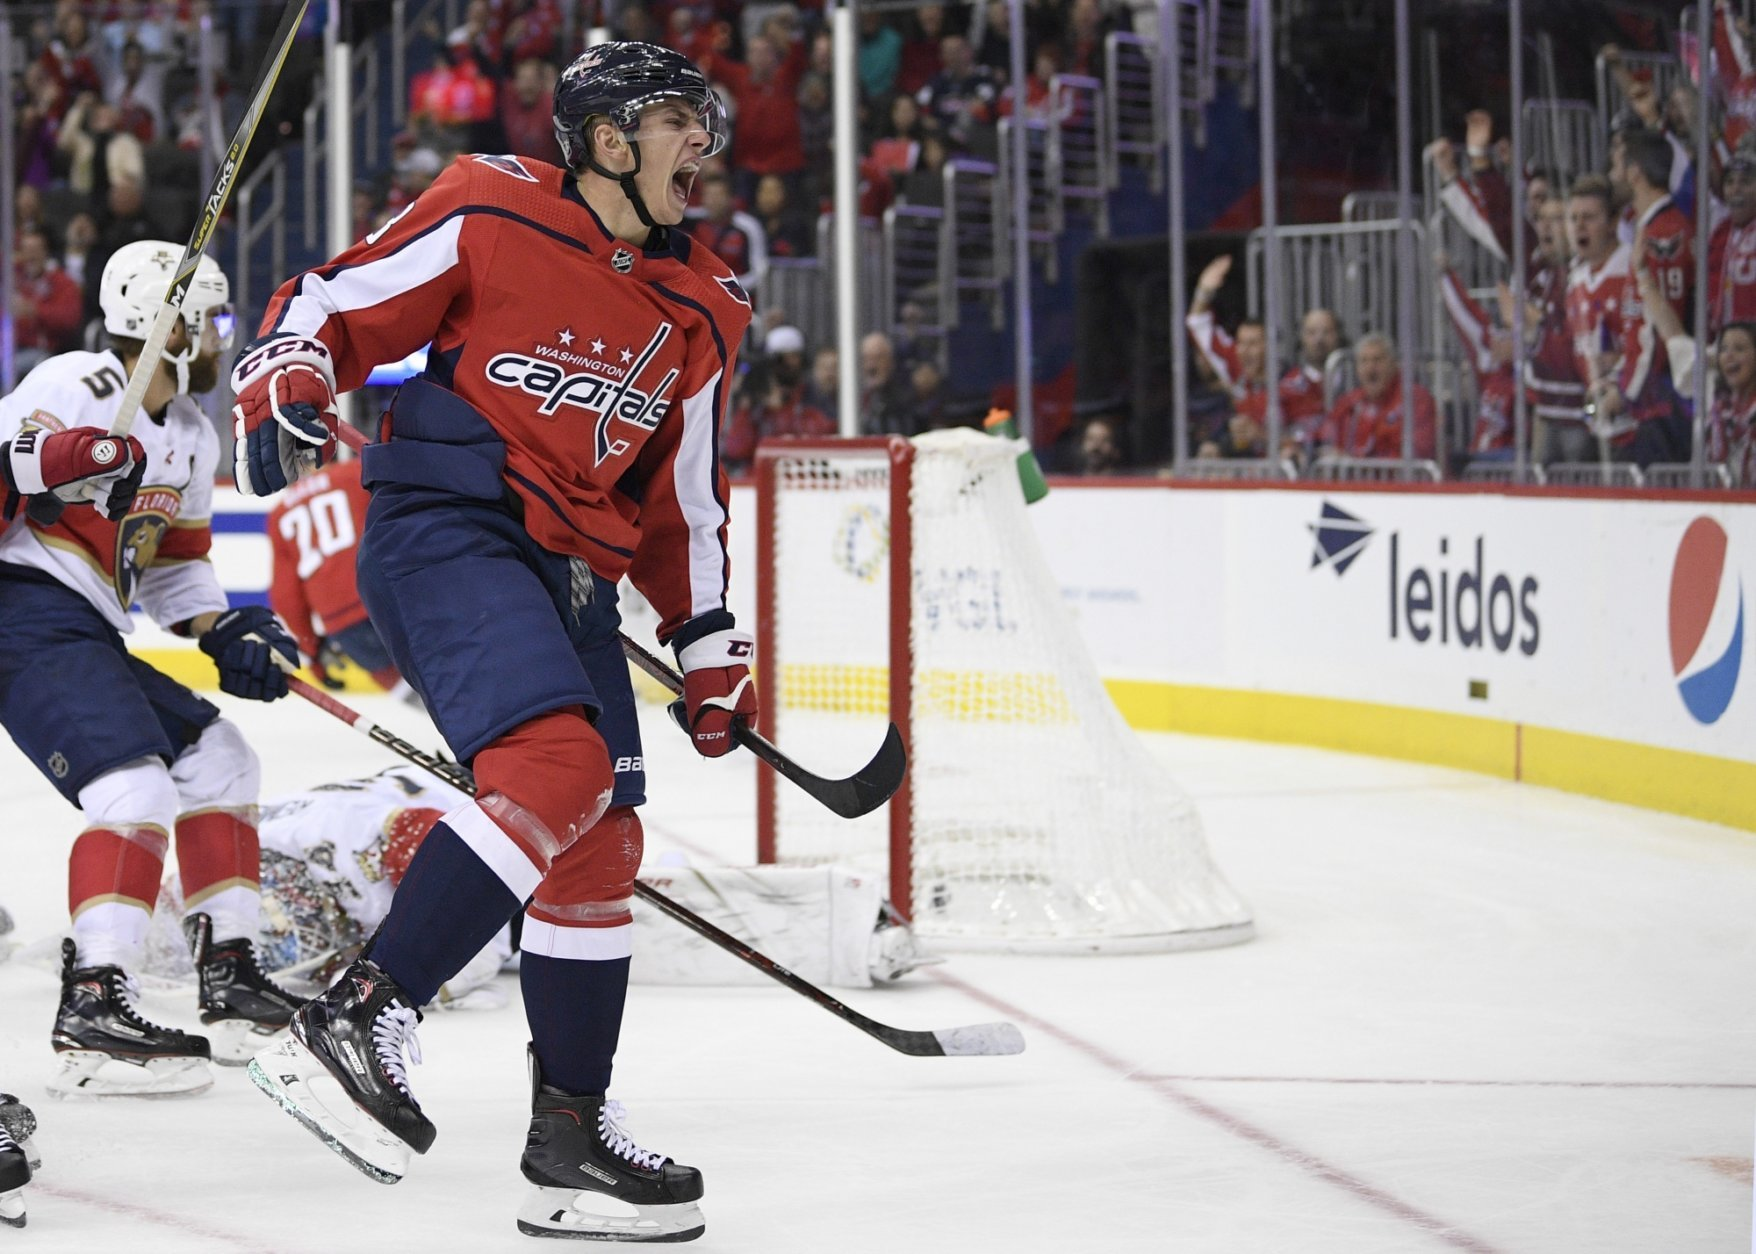 Washington Capitals left wing Jakub Vrana (13), of the Czech Republic, celebrates his goal during the second period of an NHL hockey game against the Florida Panthers, Friday, Oct. 19, 2018, in Washington. (AP Photo/Nick Wass)